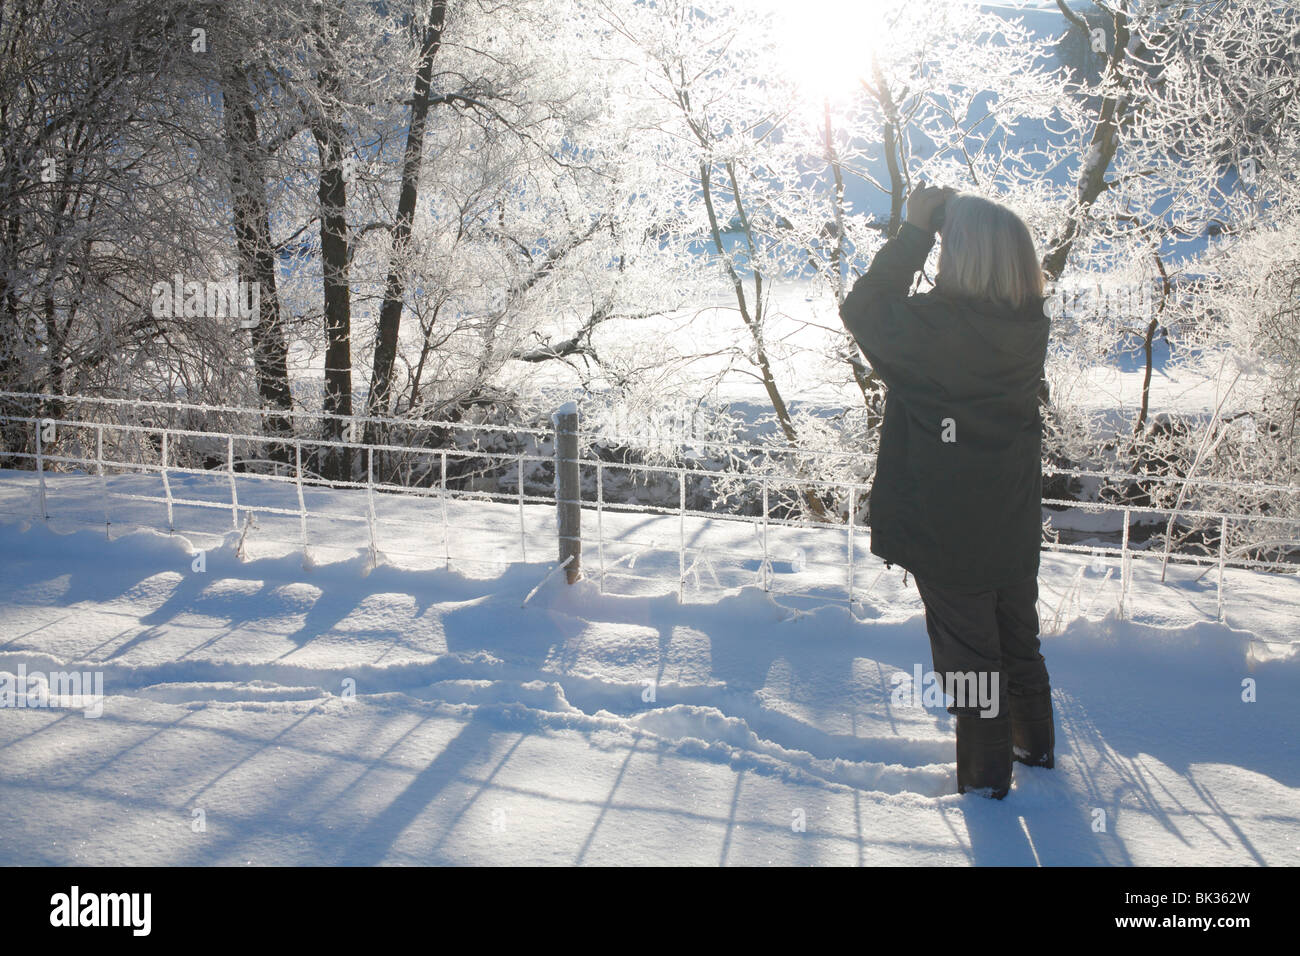 Woman using binoculars watching birds in ice-covered trees after a heavy fall of snow. Powys, Wales. - Stock Image